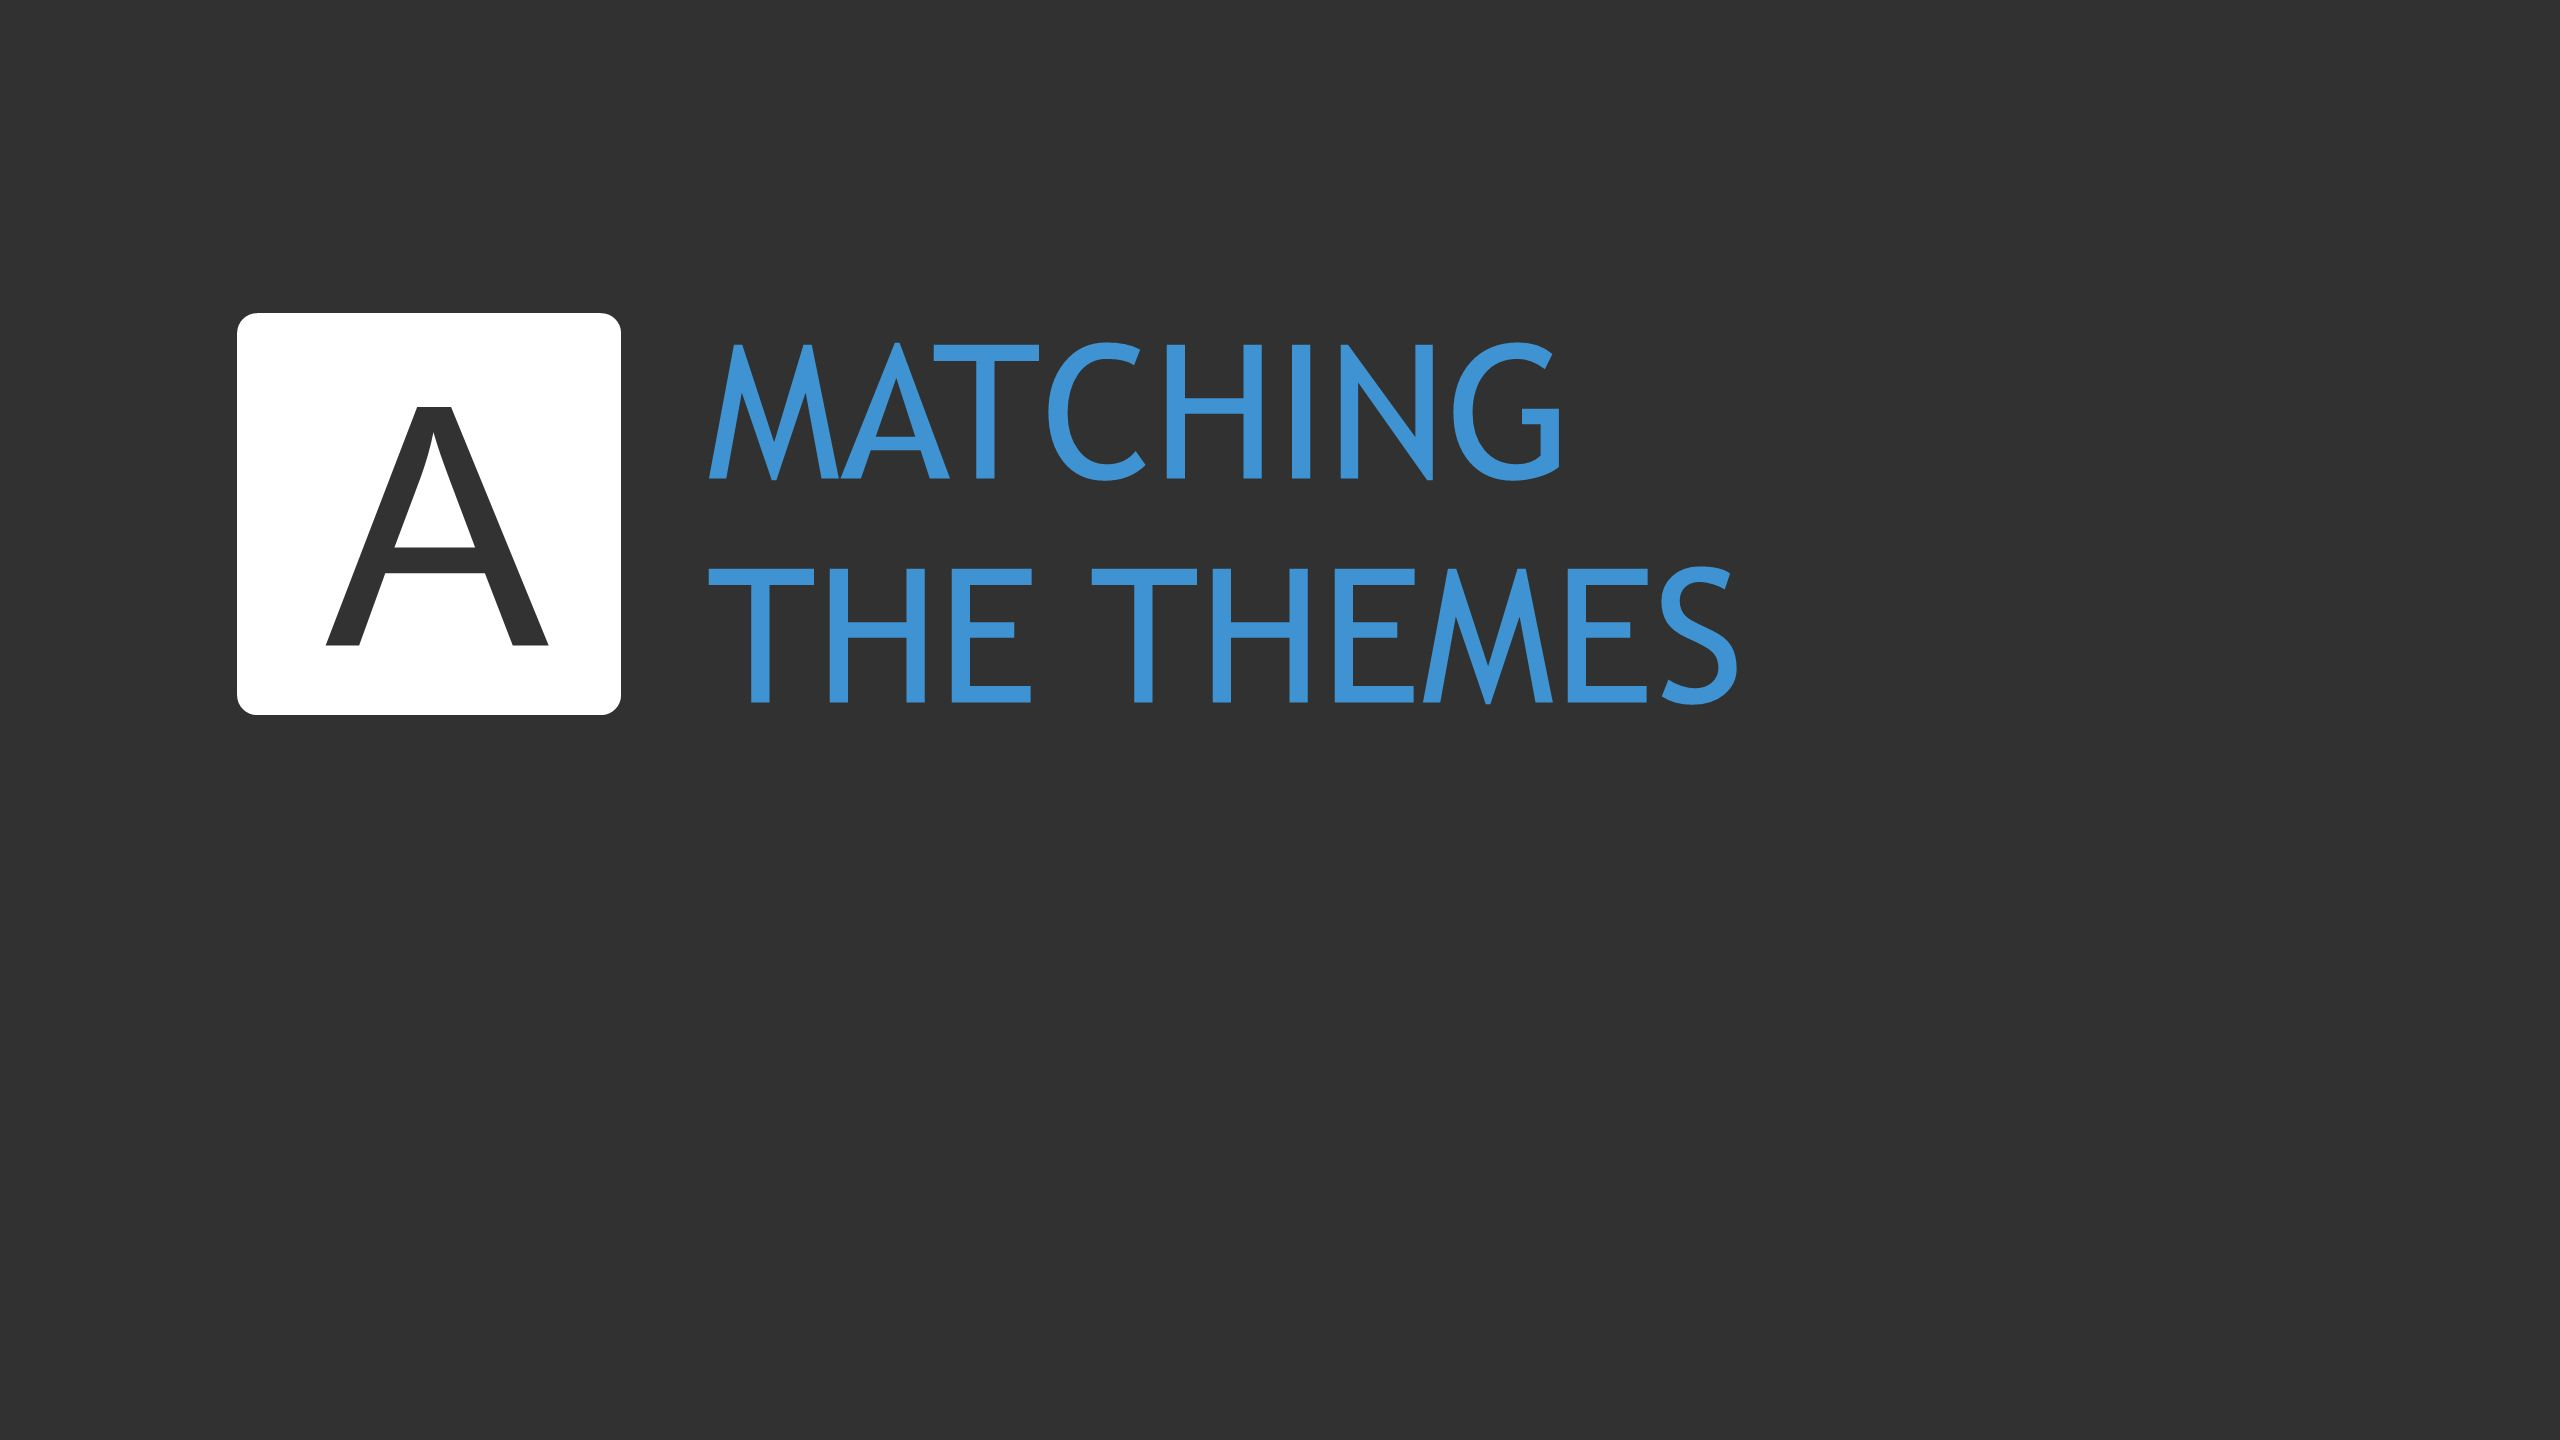 MATCHING THE THEMES A